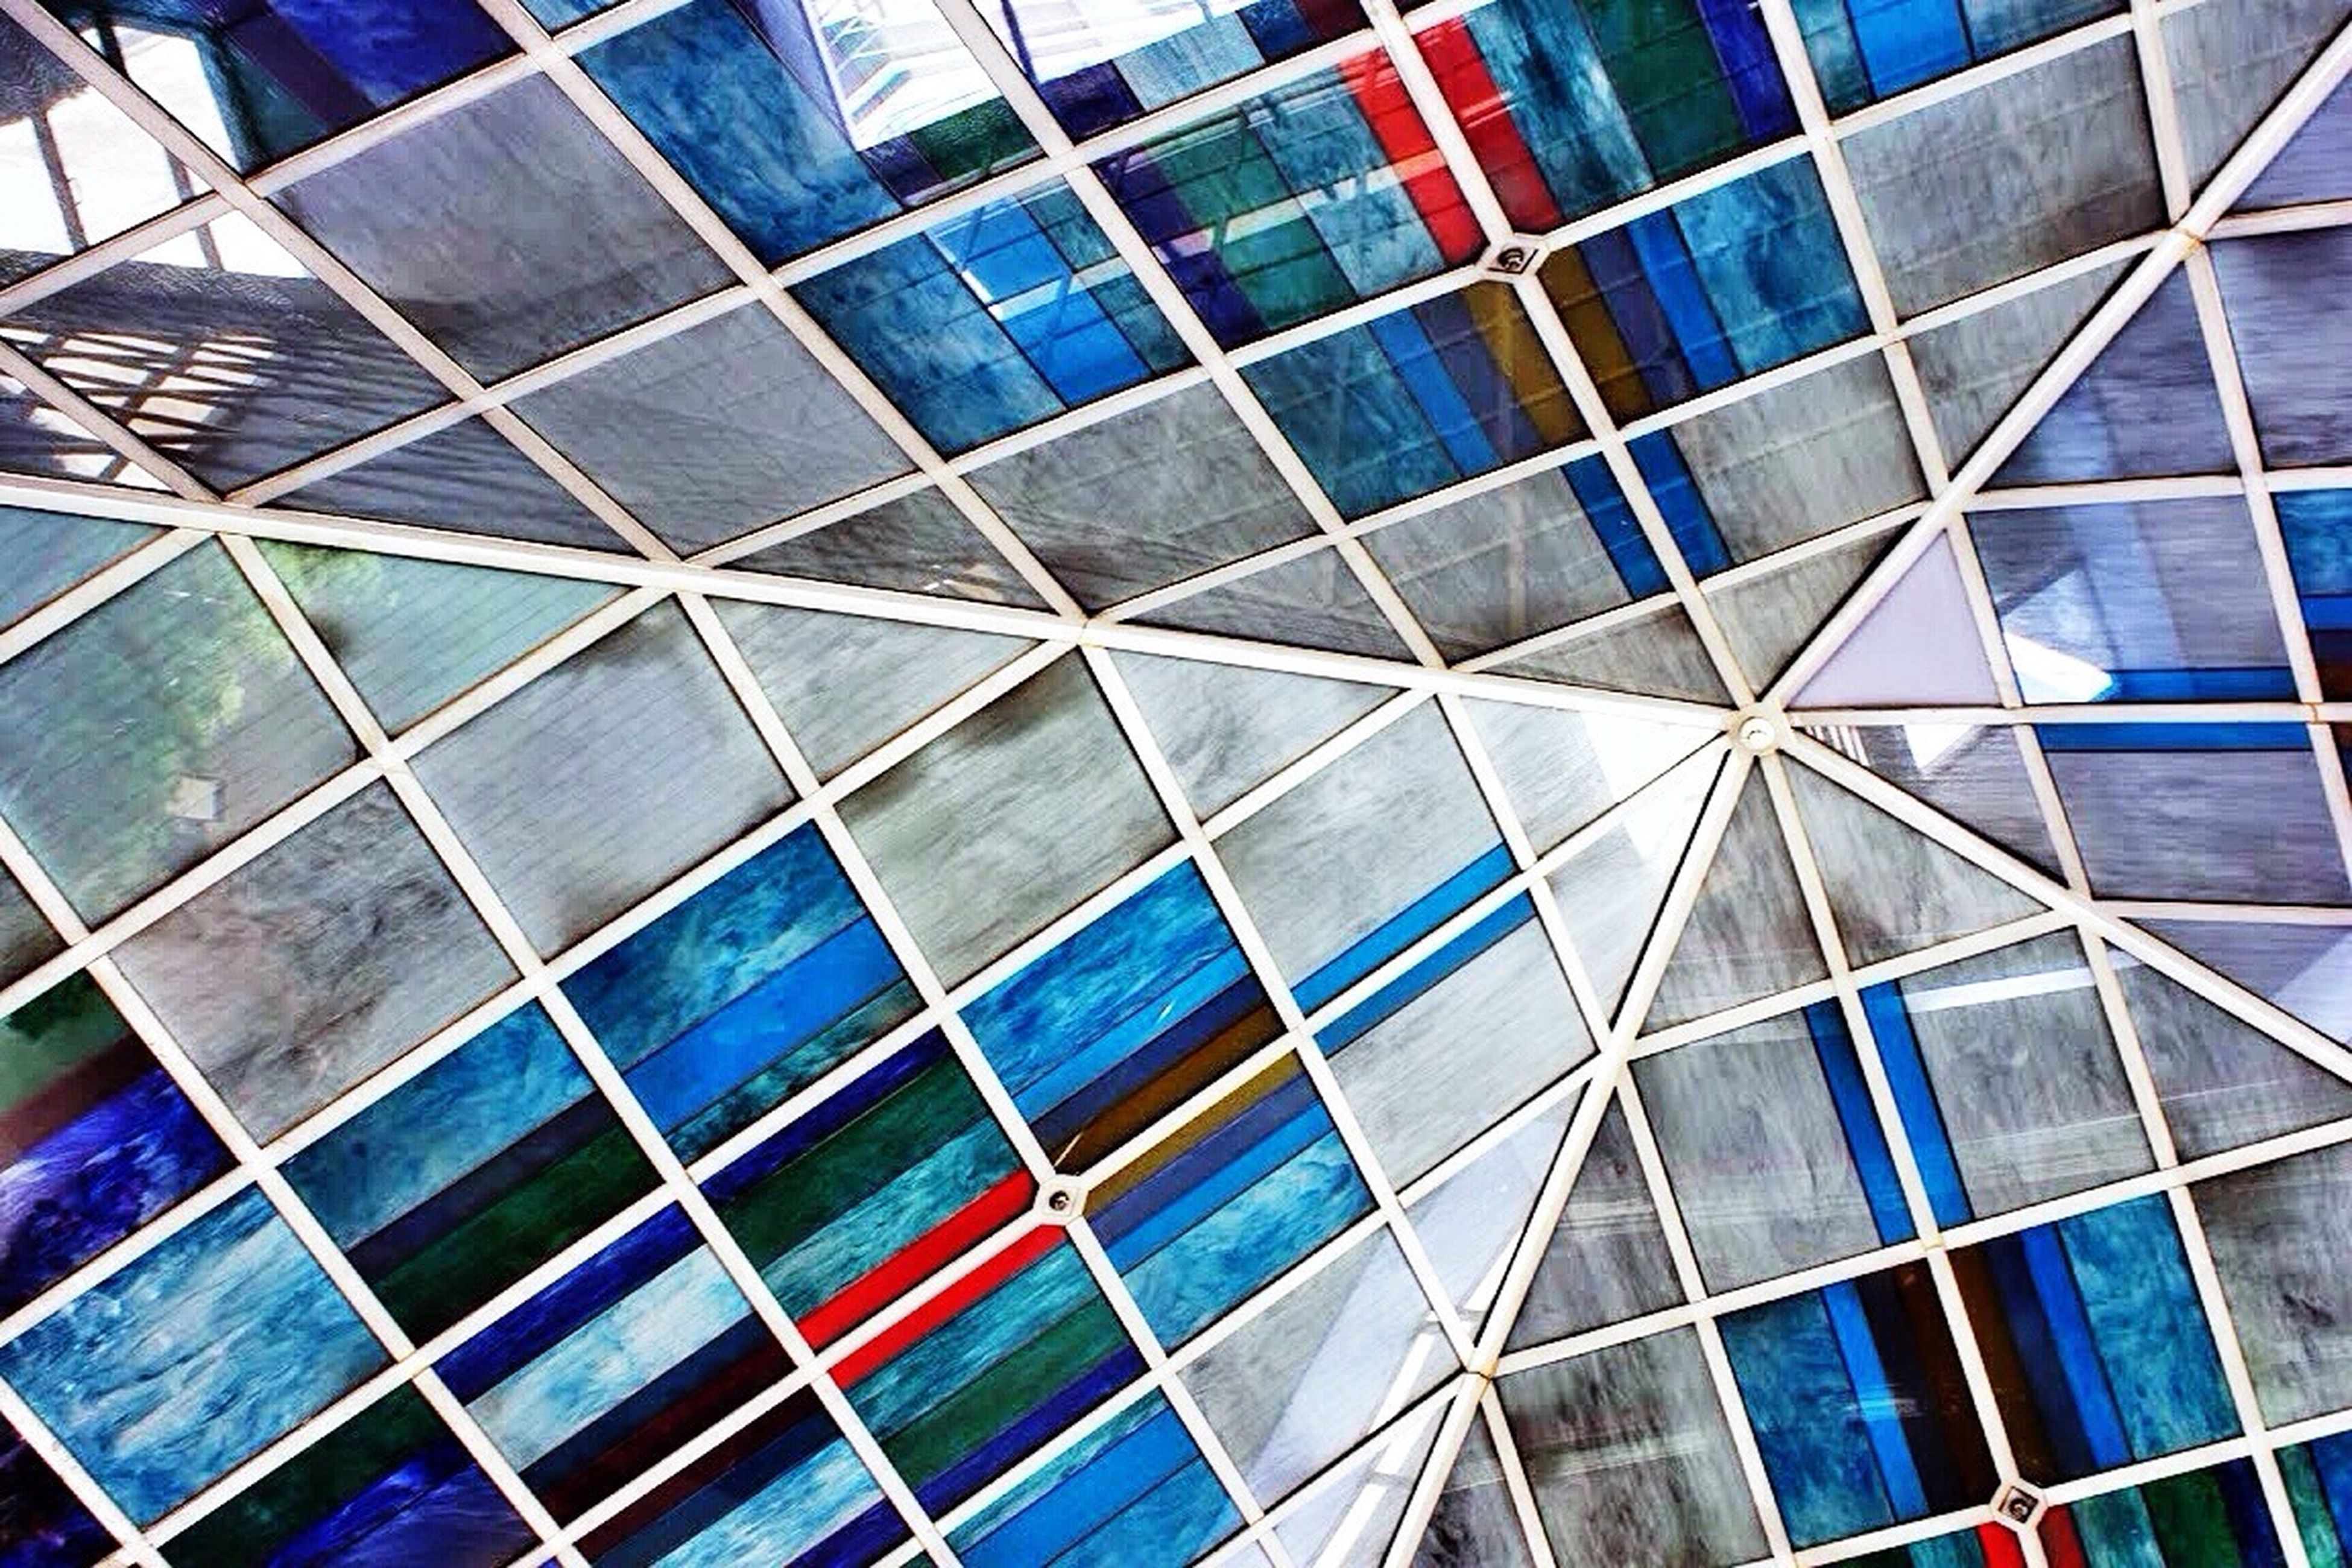 modern, full frame, architecture, backgrounds, building exterior, built structure, pattern, office building, city, skyscraper, glass - material, reflection, low angle view, building, multi colored, blue, tall - high, design, geometric shape, repetition